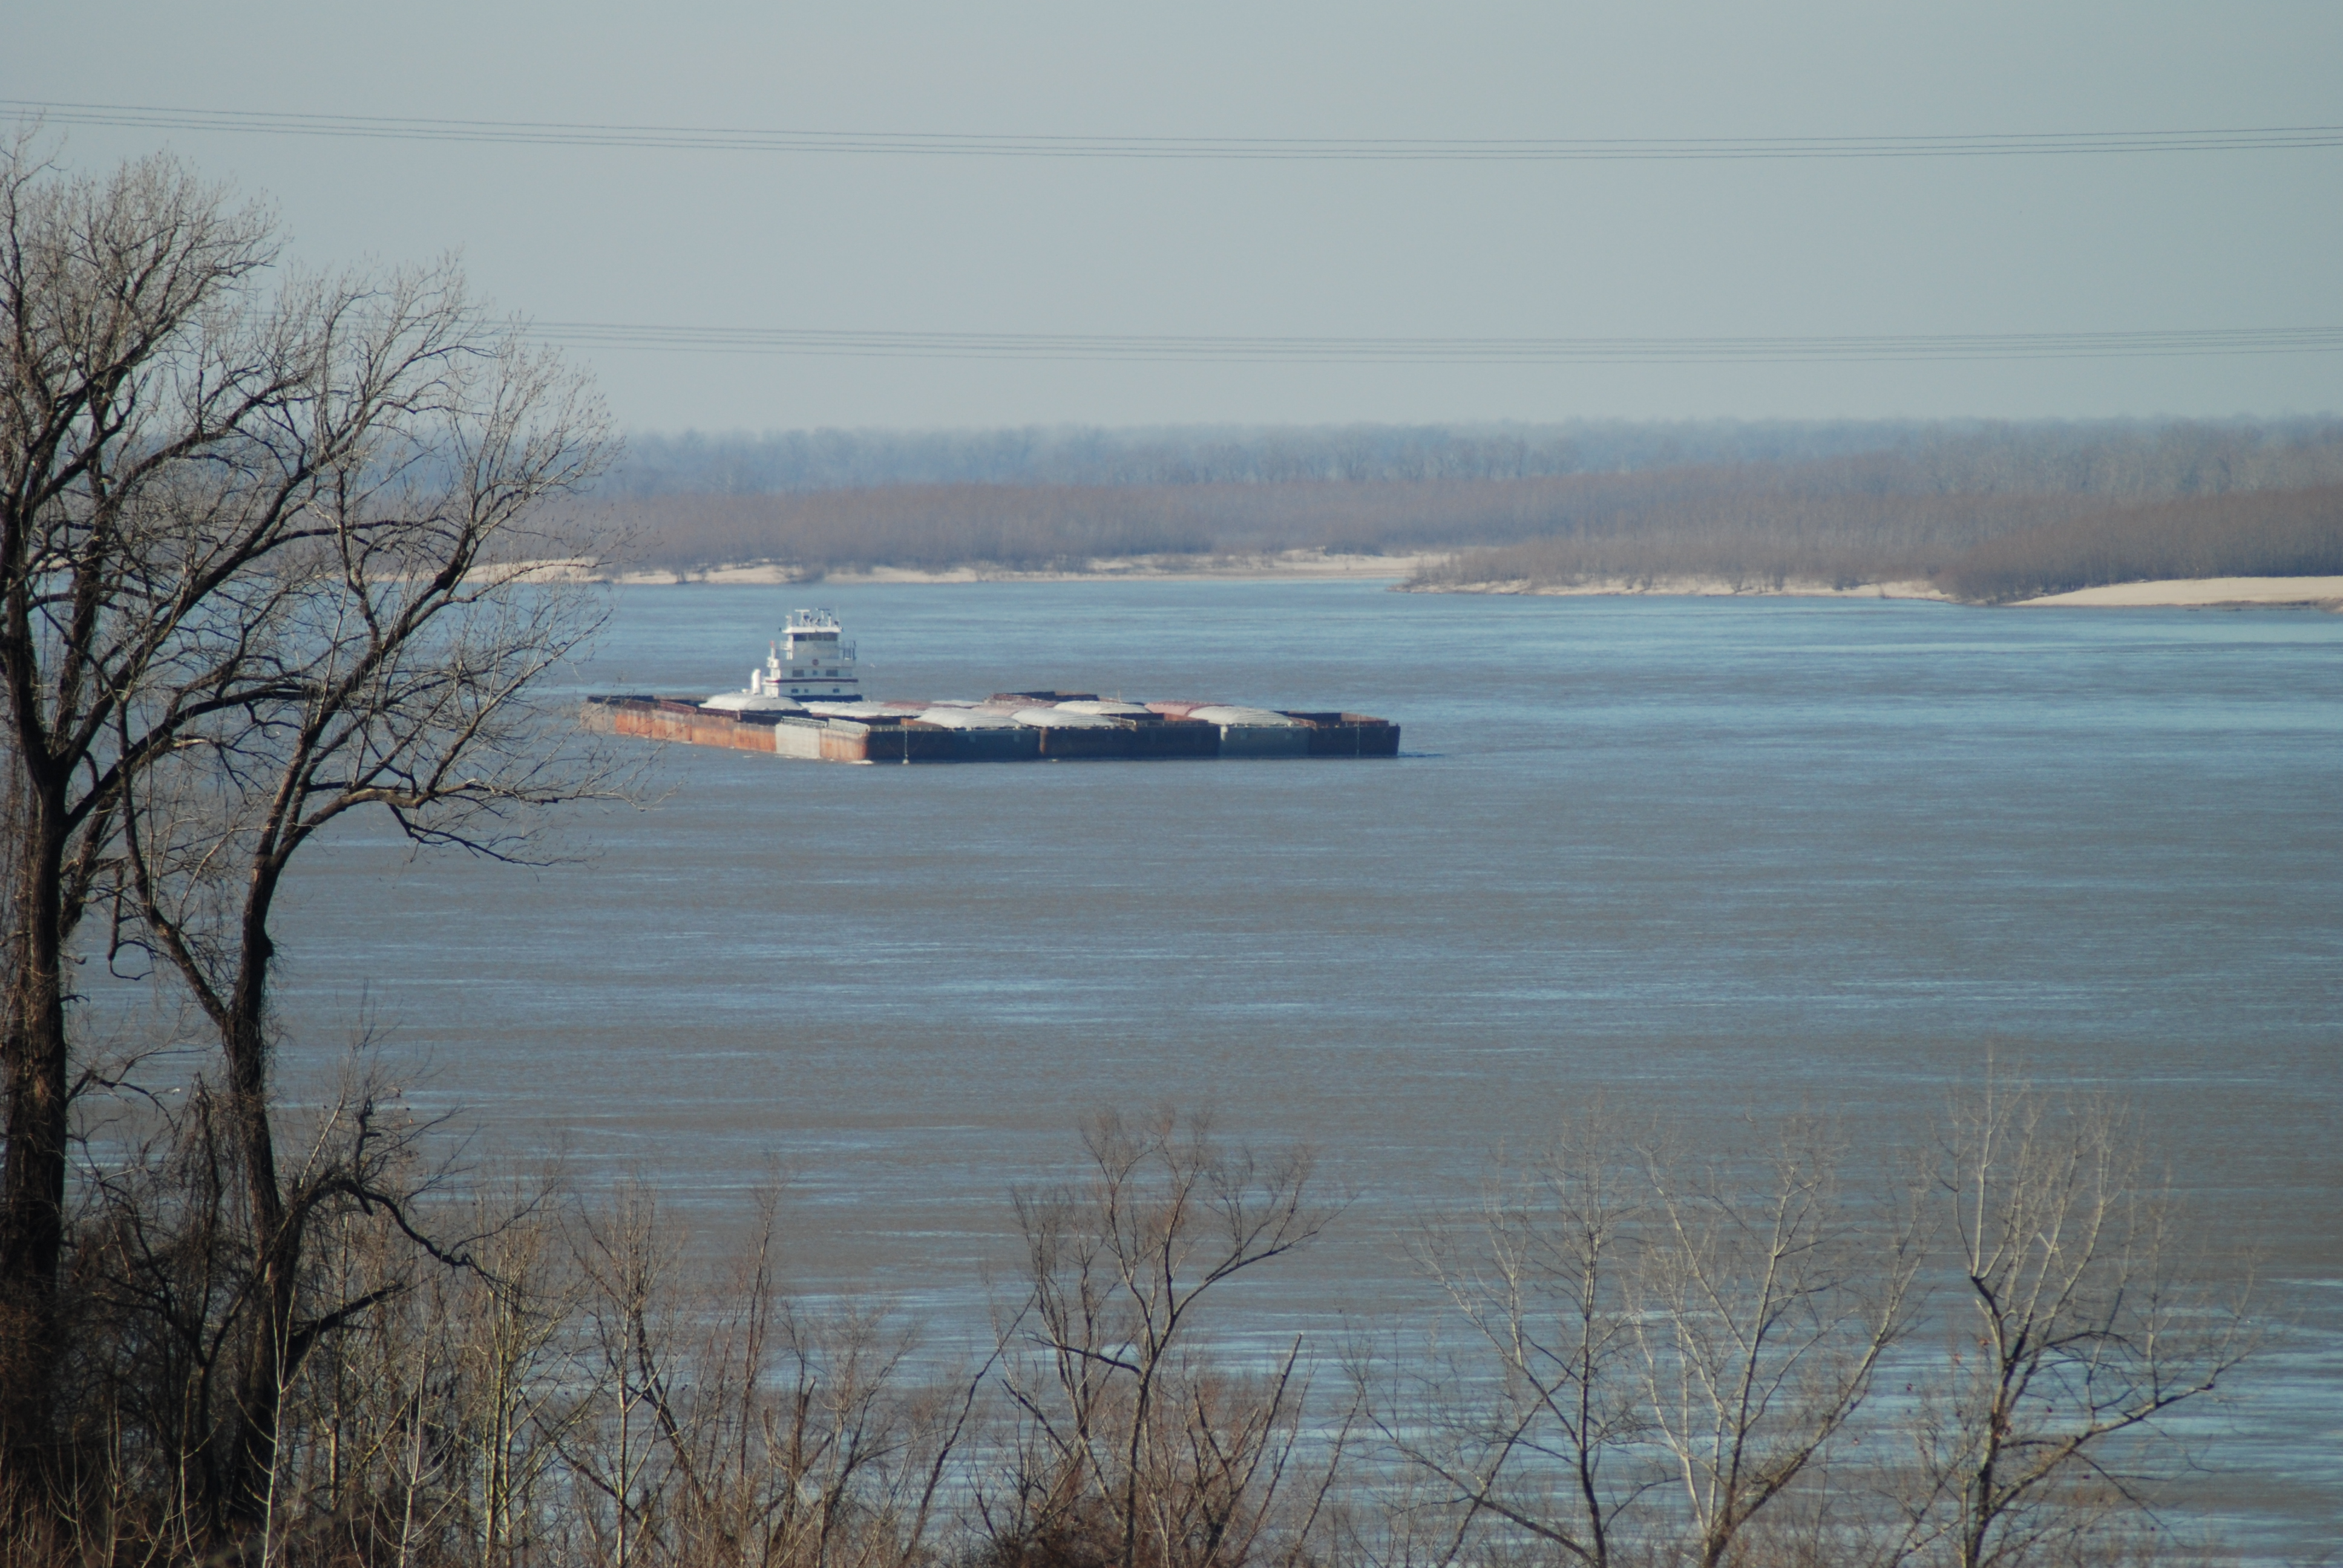 MS River Barge